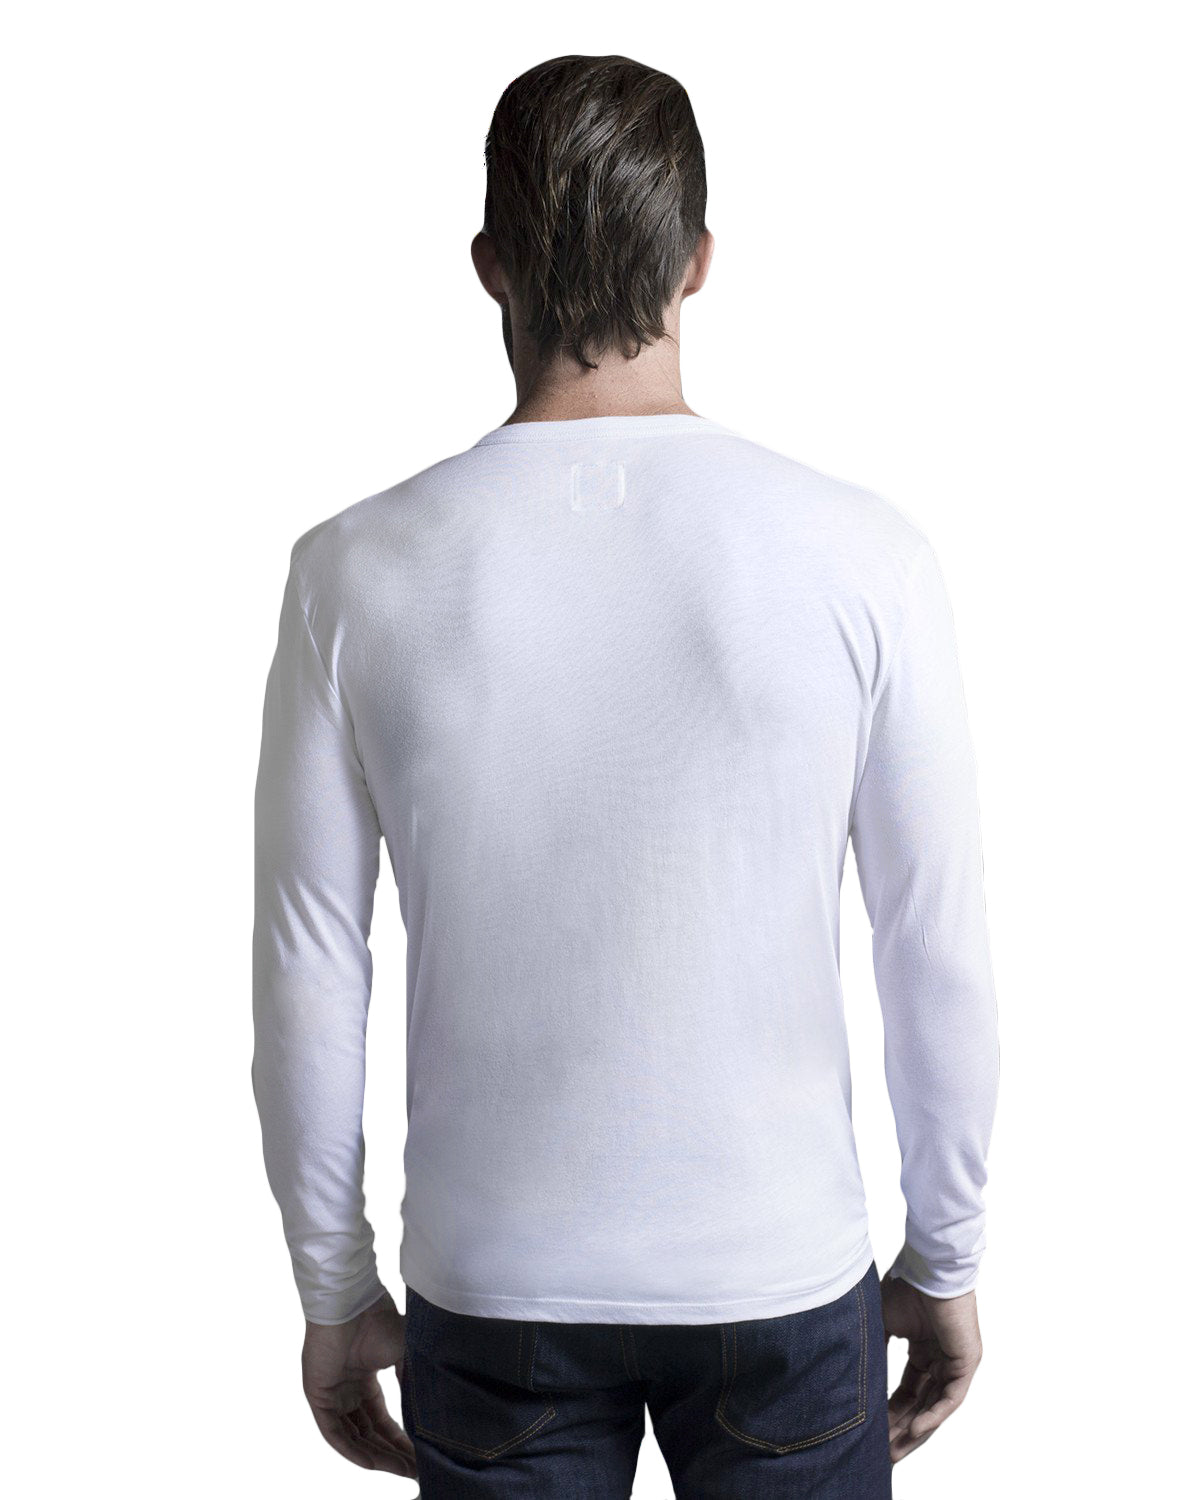 Long Sleeve Crew Neck